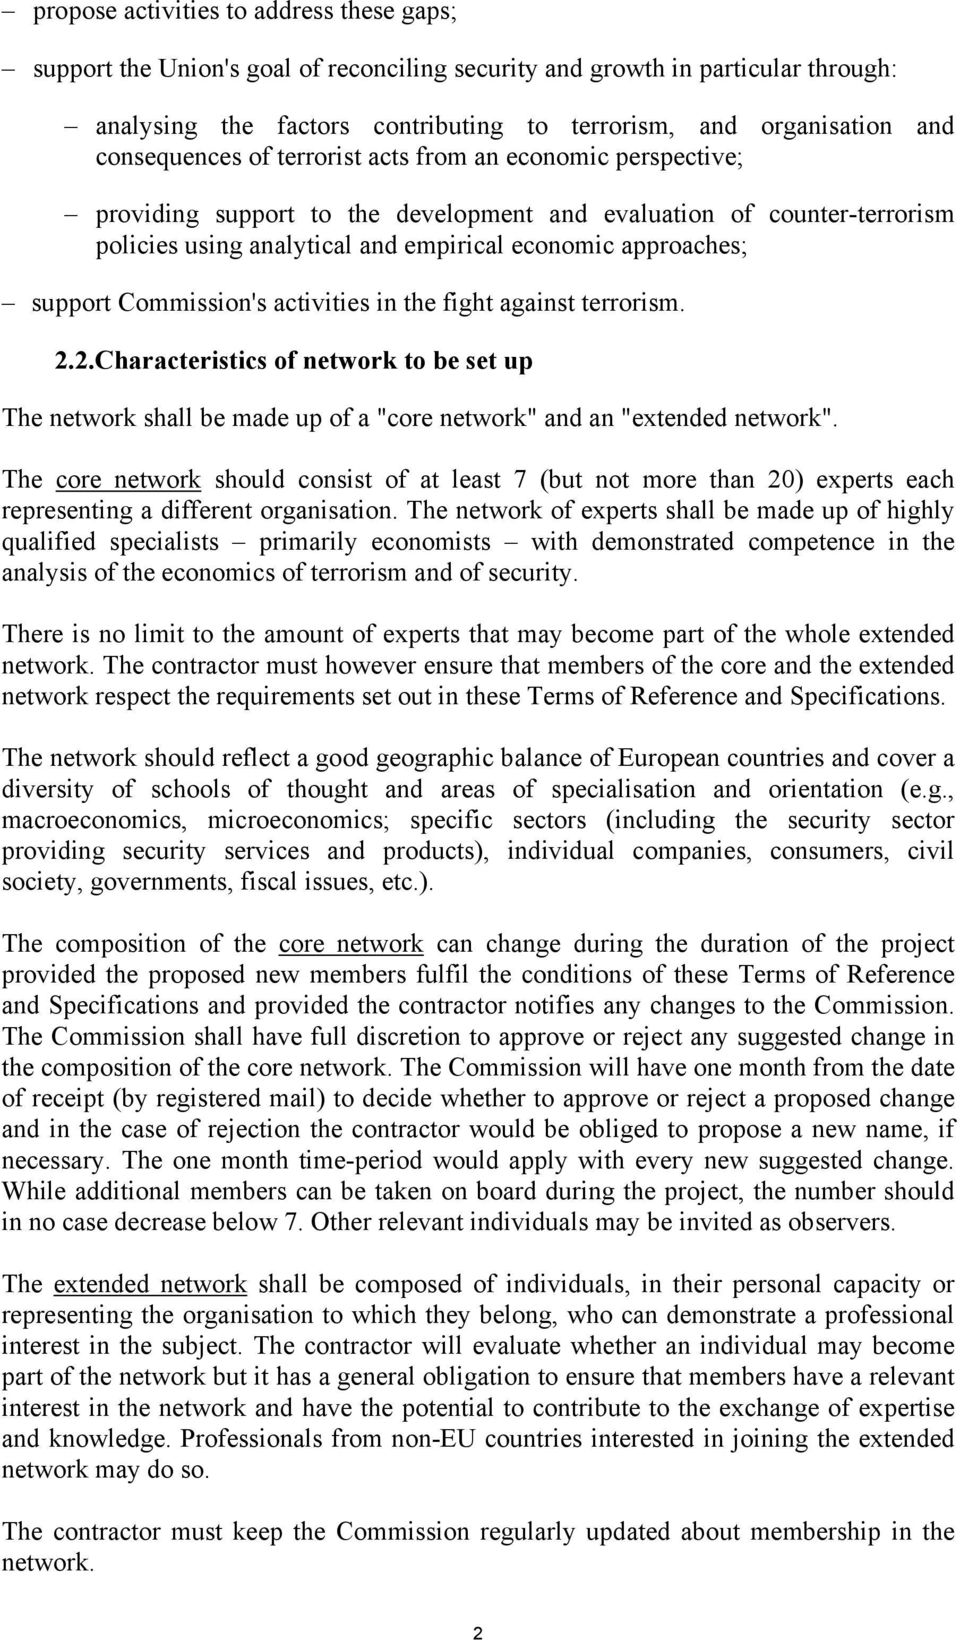 "support Commission's activities in the fight against terrorism. 2.2.Characteristics of network to be set up The network shall be made up of a ""core network"" and an ""extended network""."